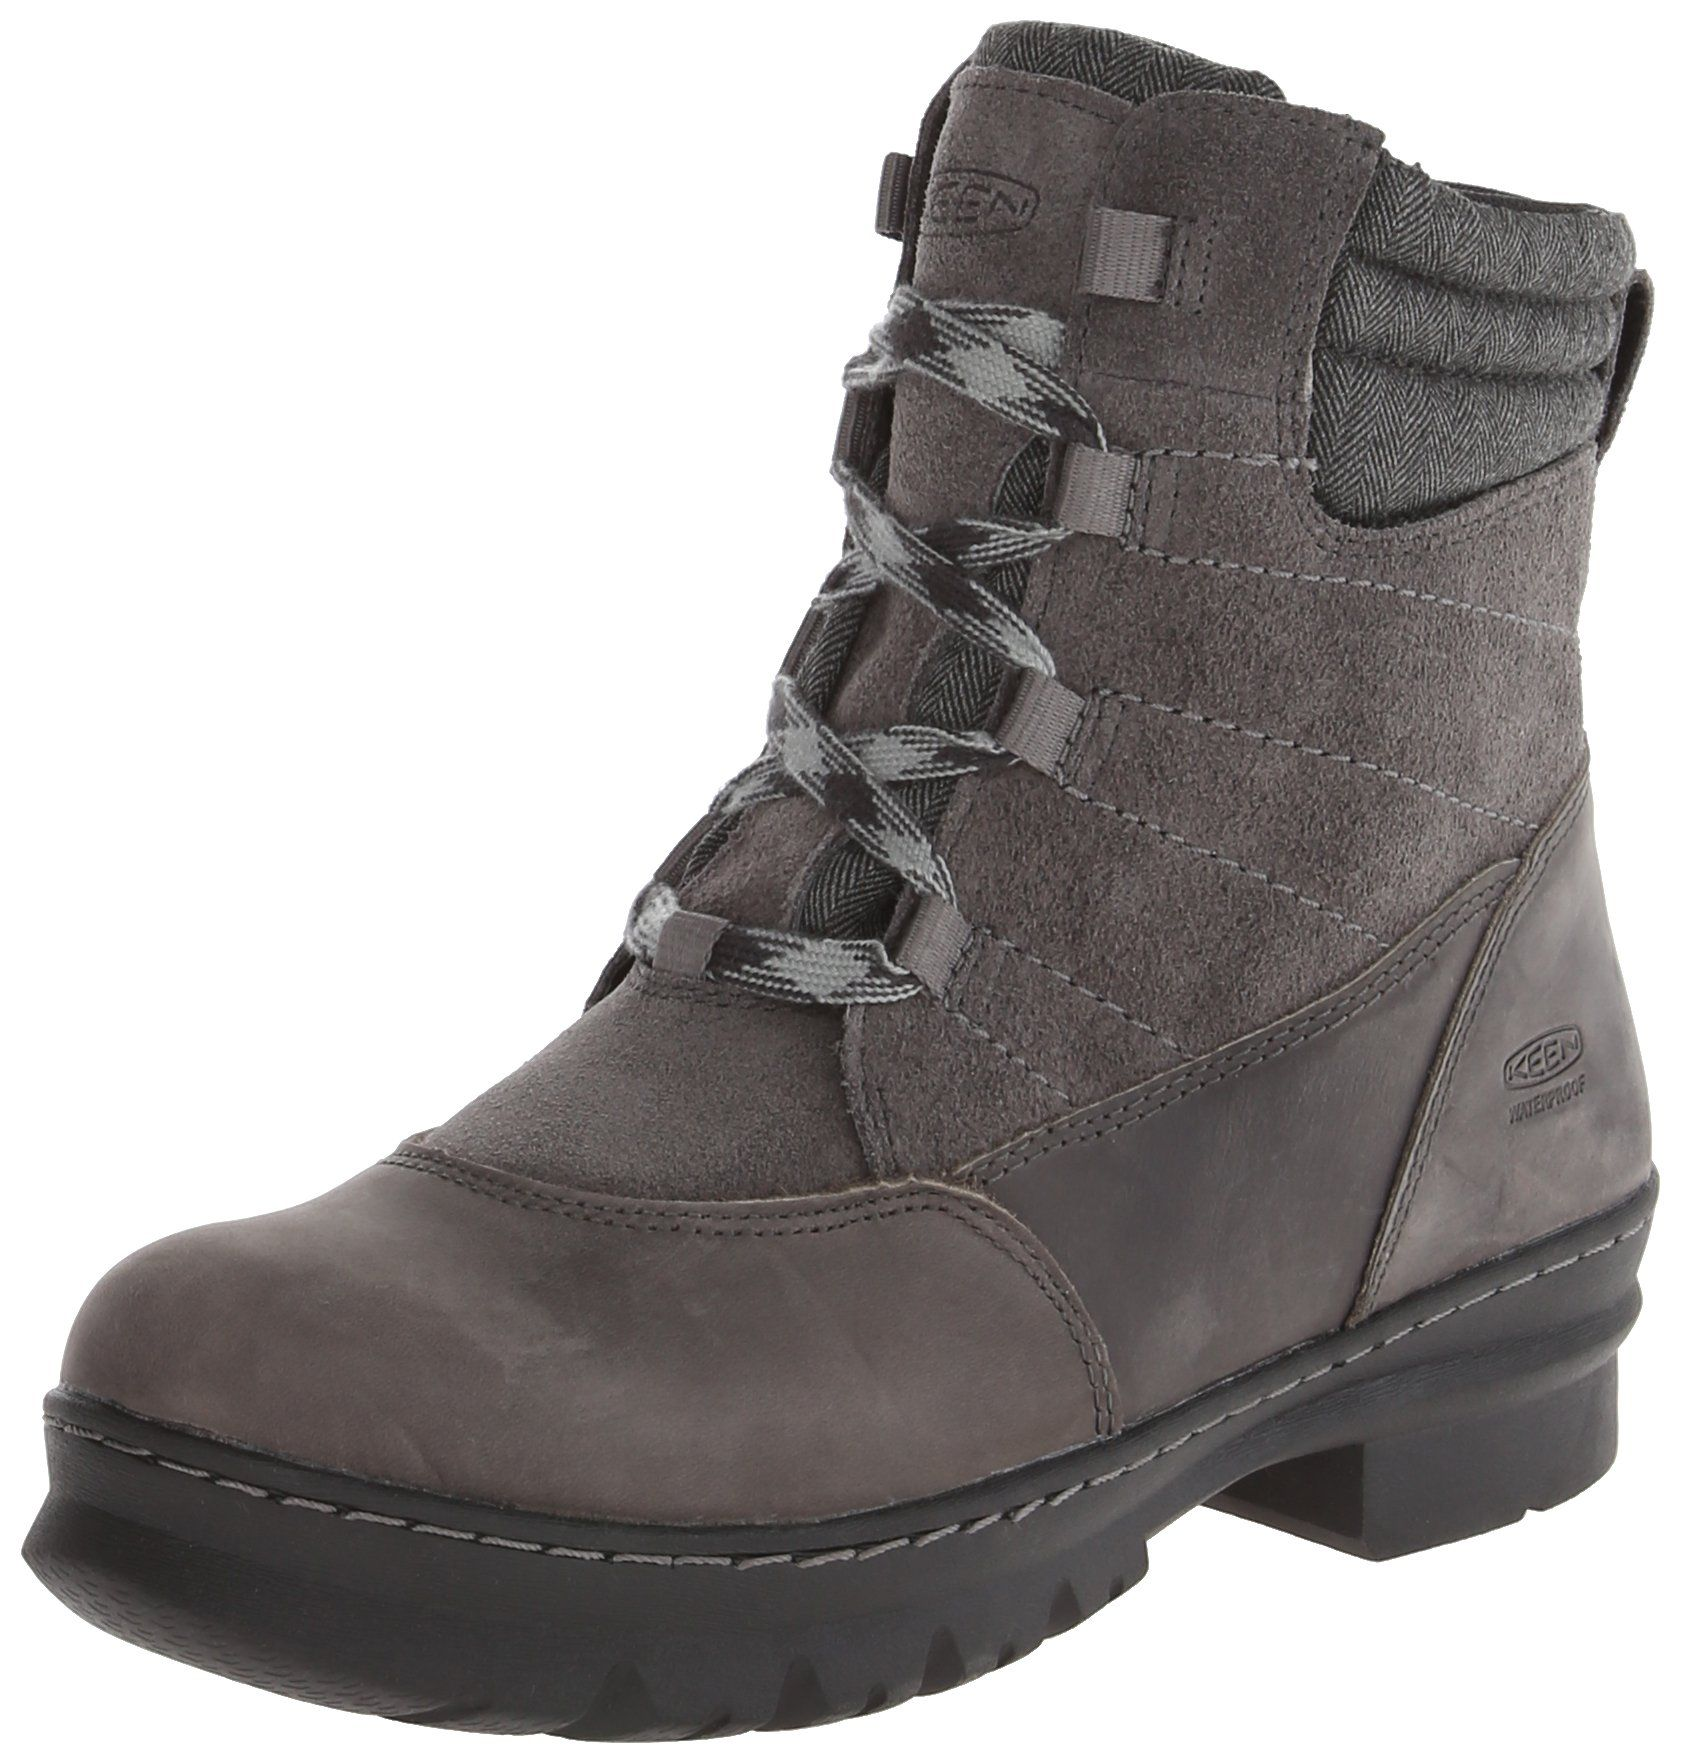 Keen Womens Mid Boots Wapato Wp Magnet